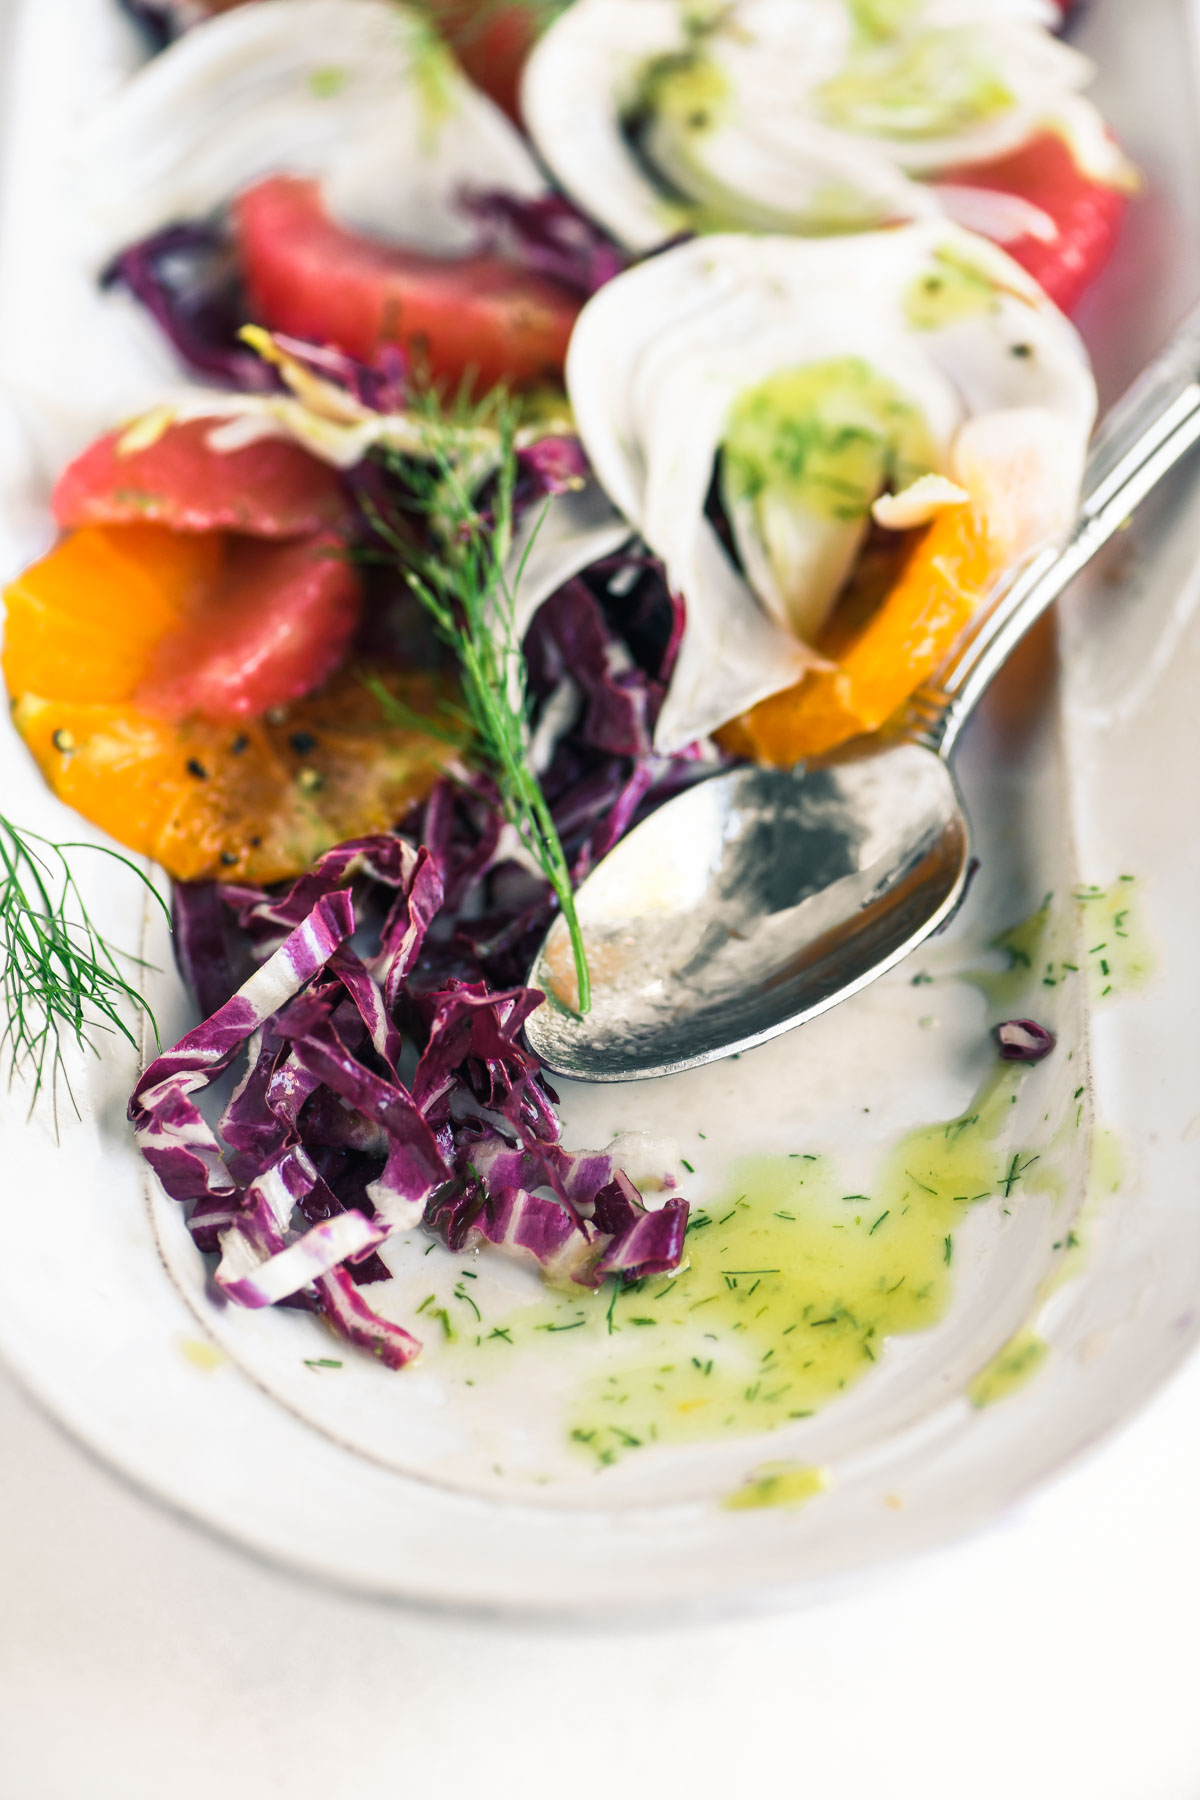 fennel and citrus salad with spoon